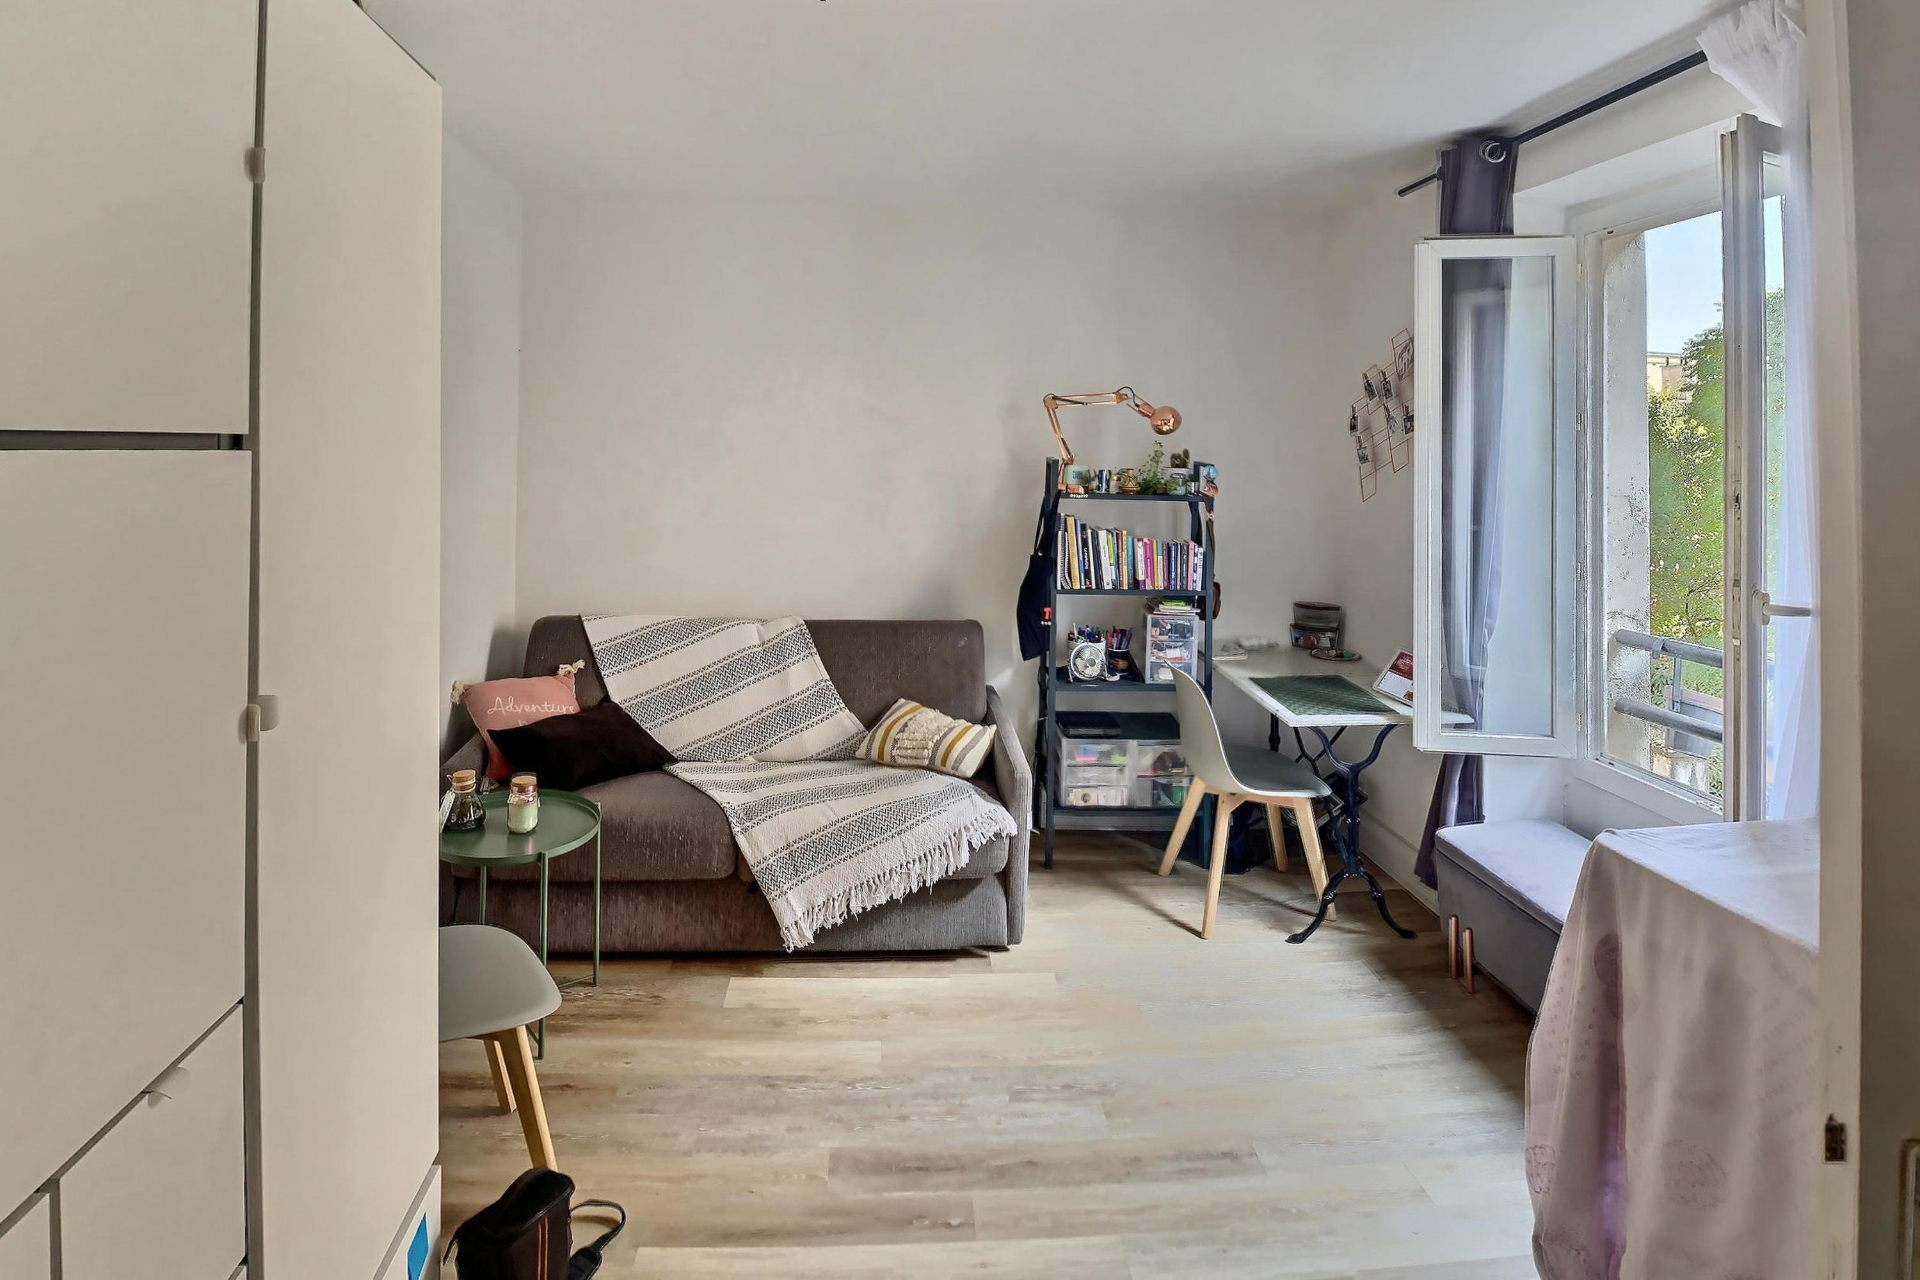 Charming studio in Abbesses facing south facing street in very quiet dead end! 1